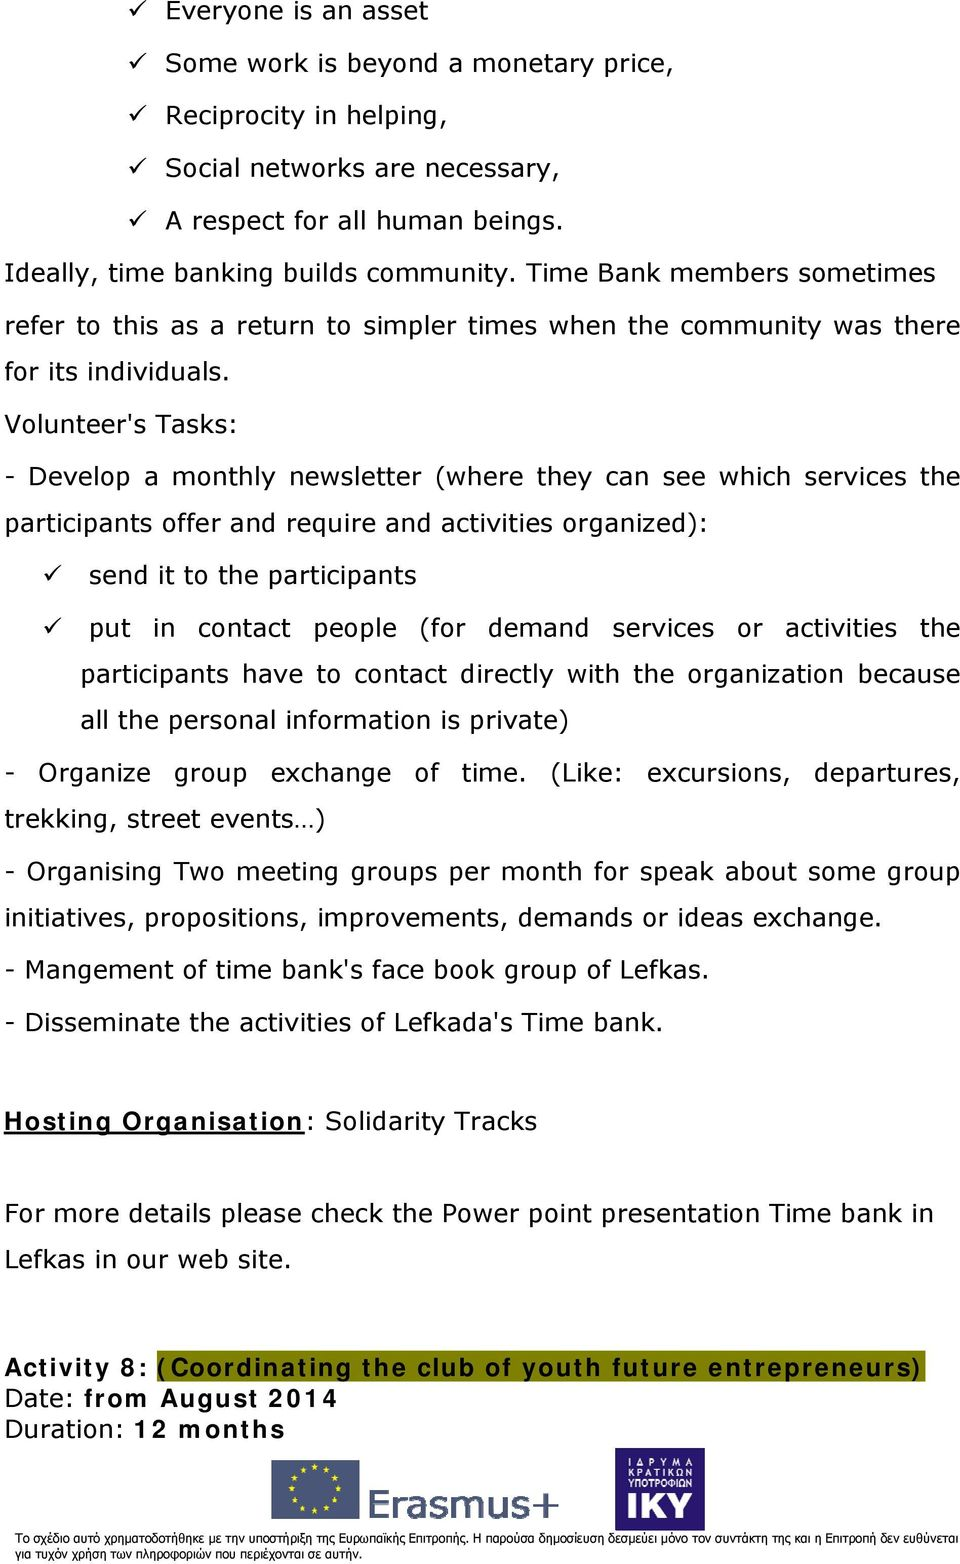 Volunteer's Tasks: - Develop a monthly newsletter (where they can see which services the participants offer and require and activities organized): send it to the participants put in contact people